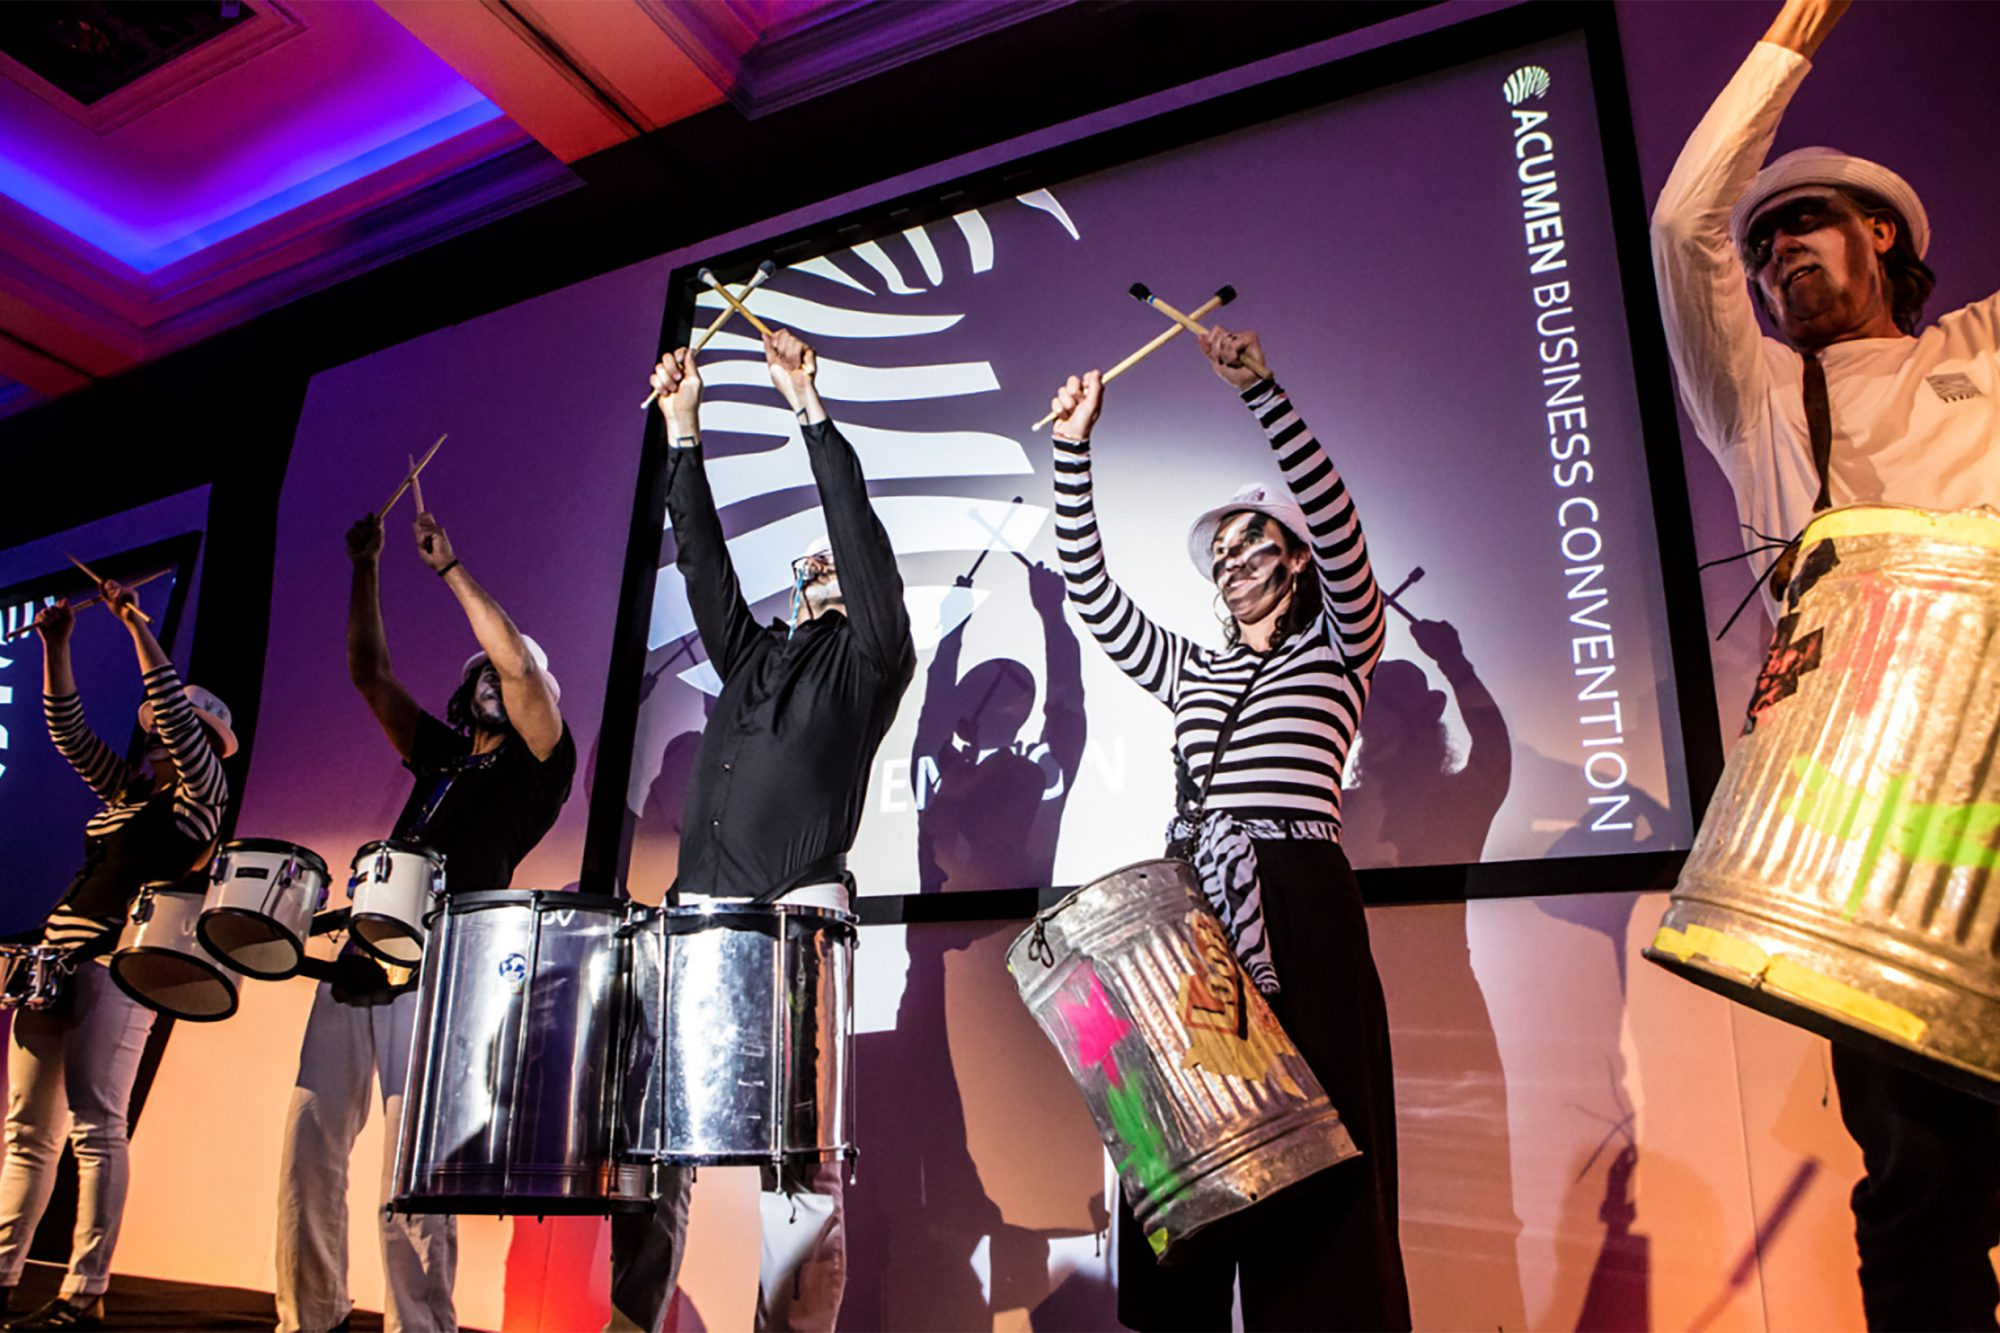 Acumen Business Convention drummers